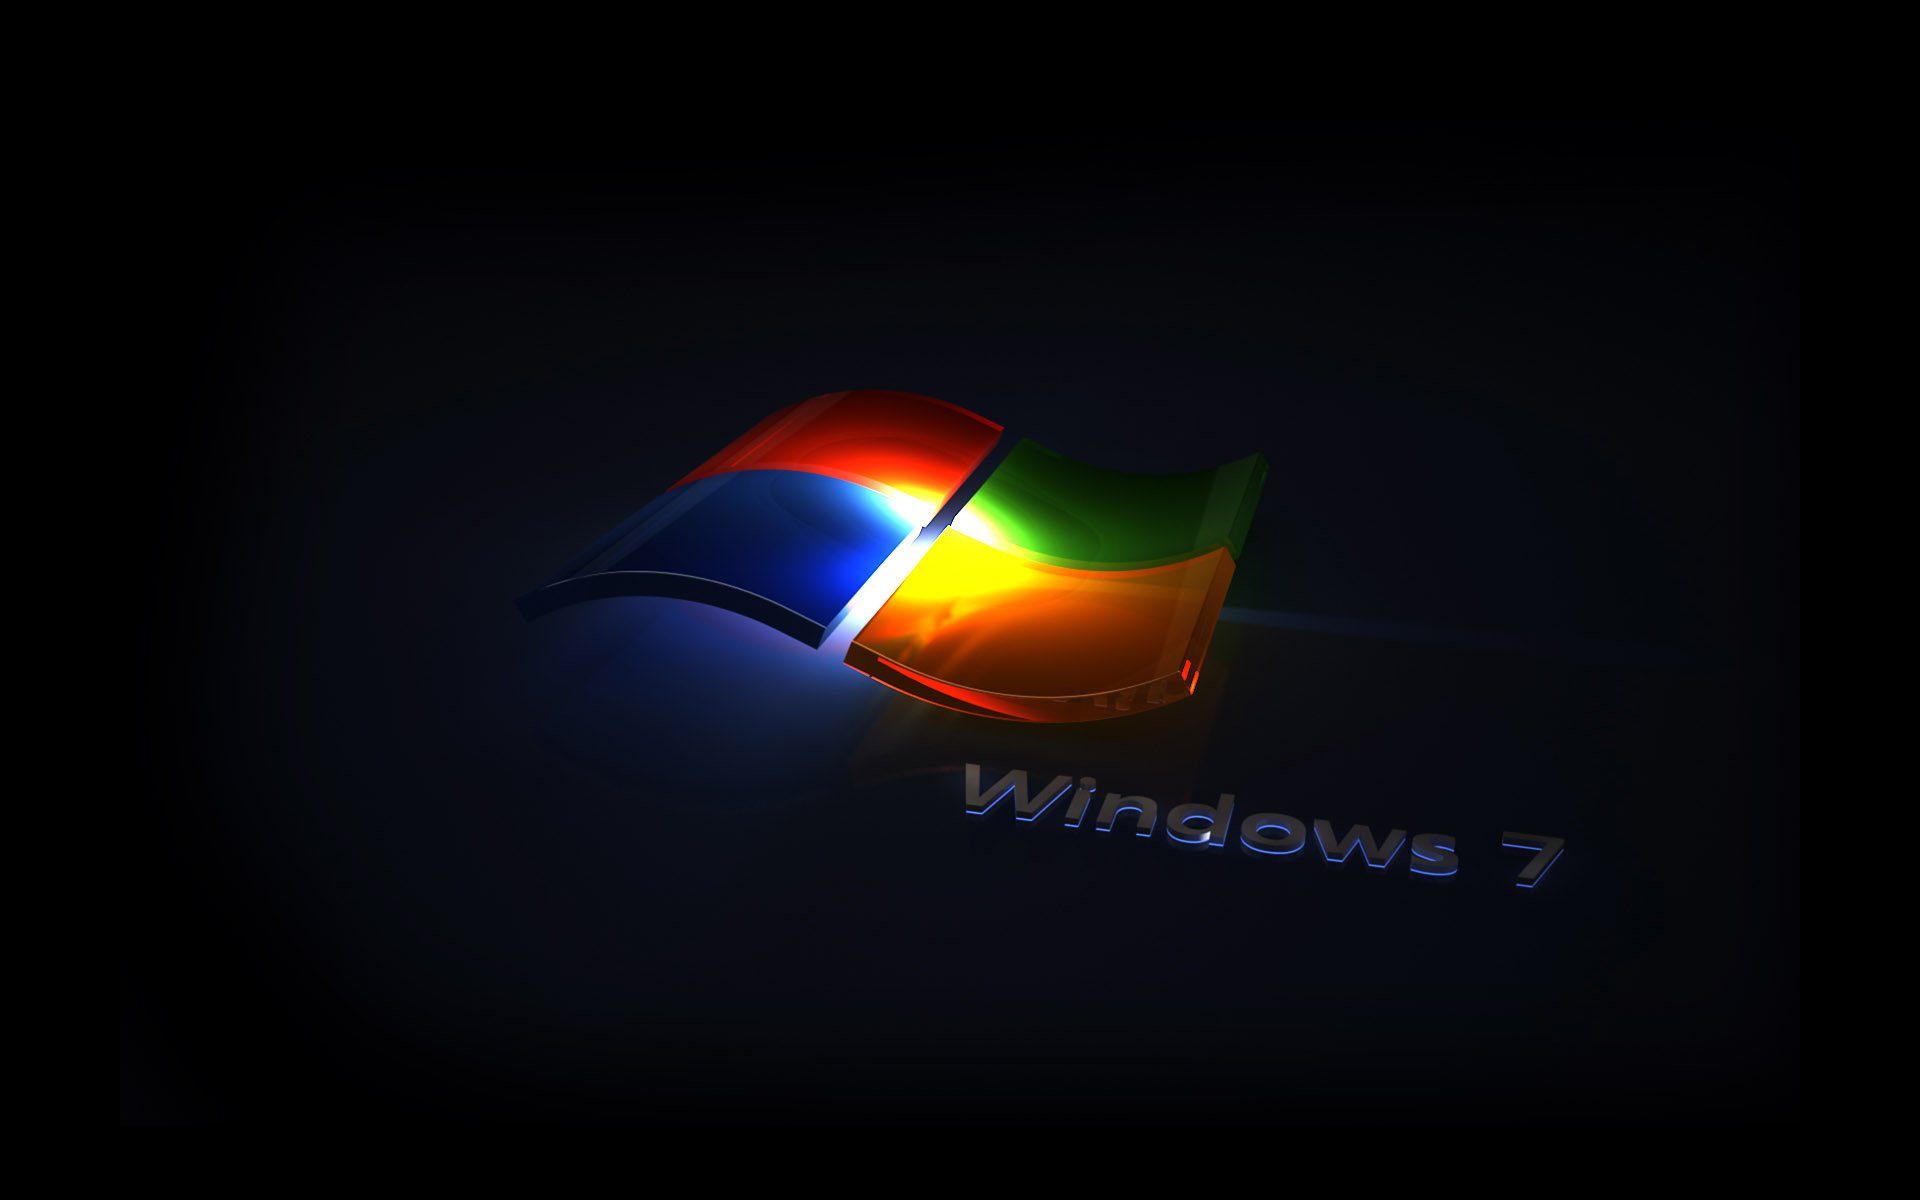 Windows Desktop Wallpaper 9934